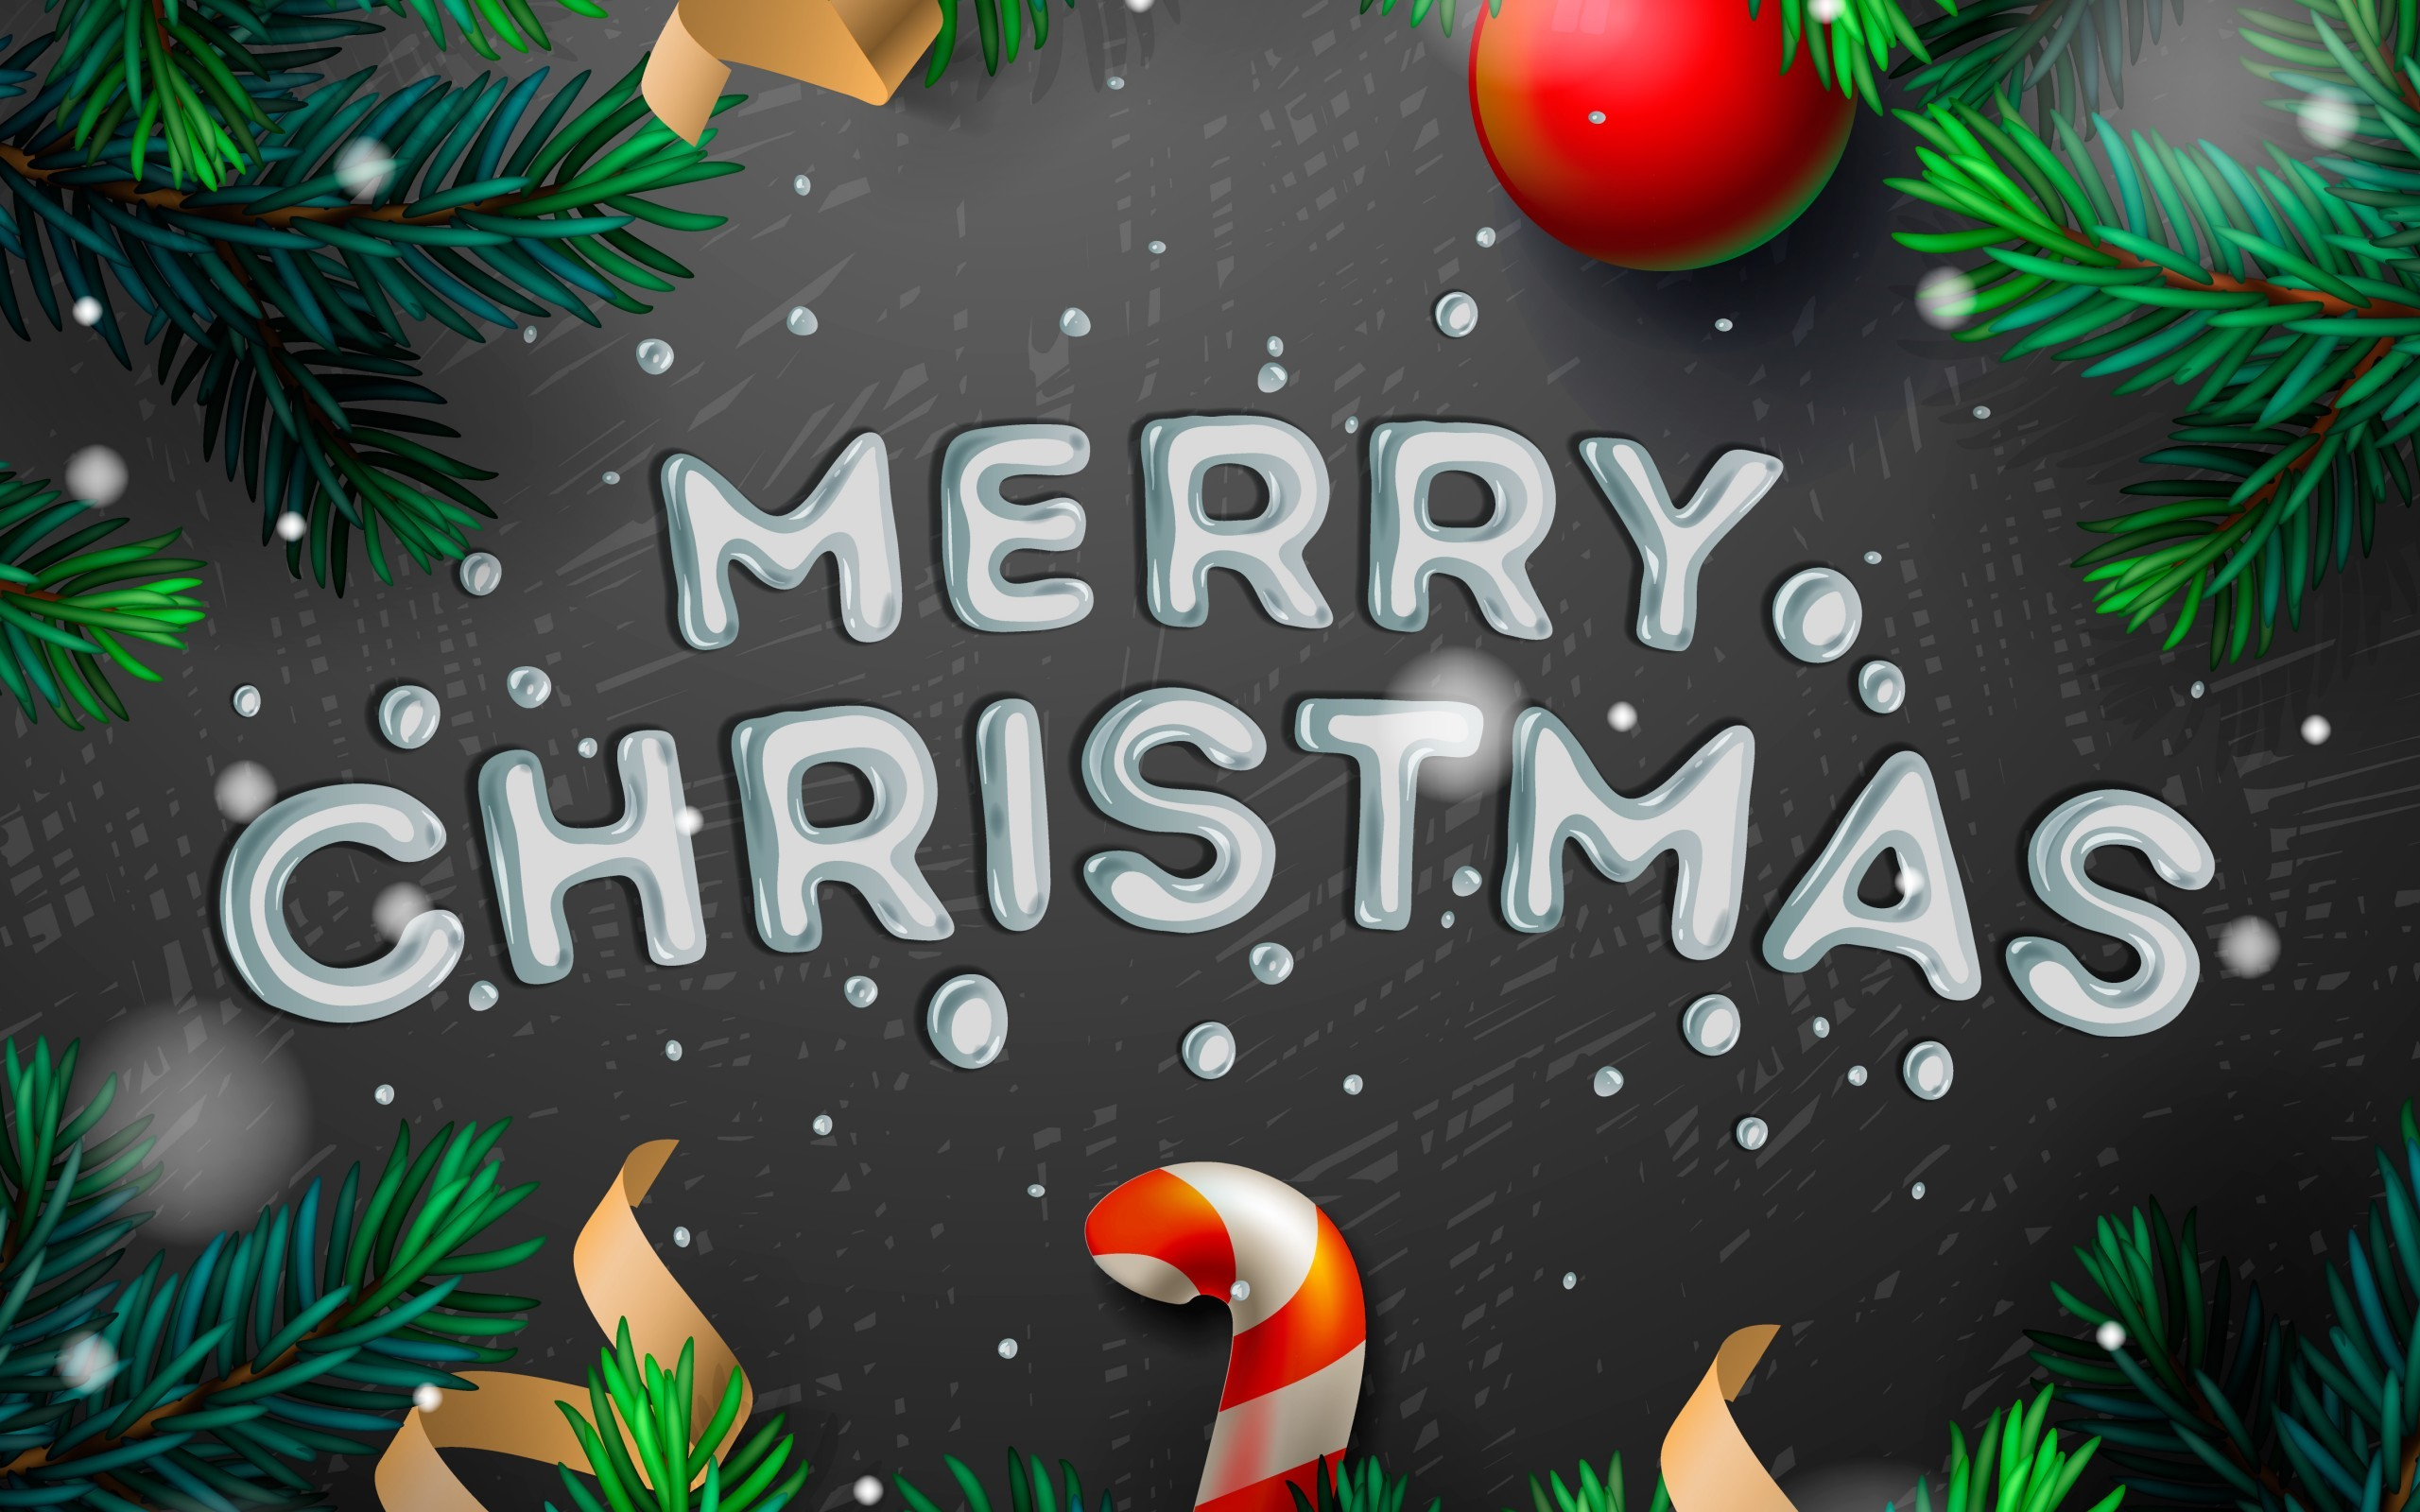 Merry Christmas Computer Wallpaper (67+ Images